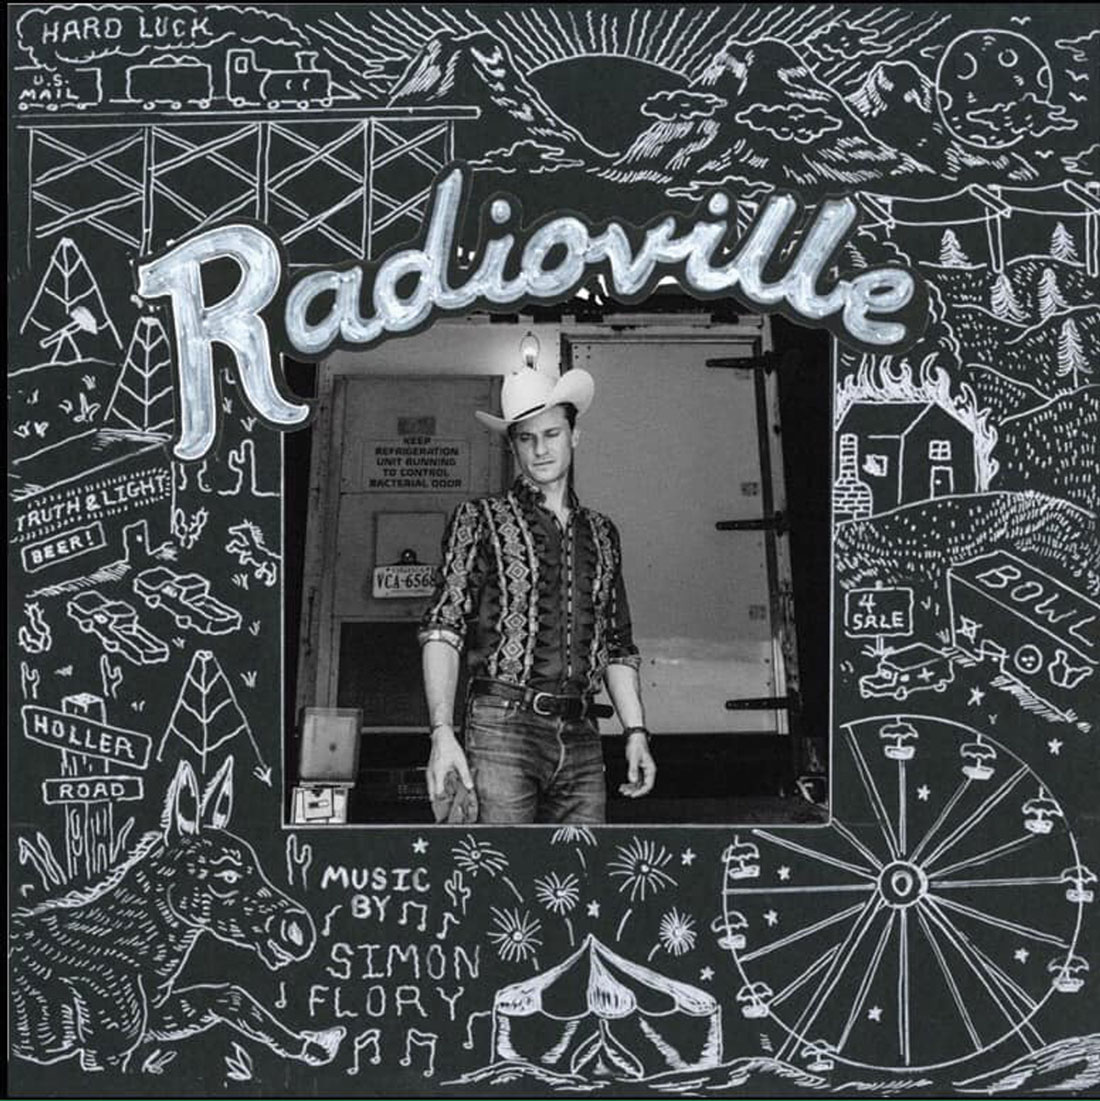 Radioville, Simon Flory (Self-released) - Fort Worth Weekly